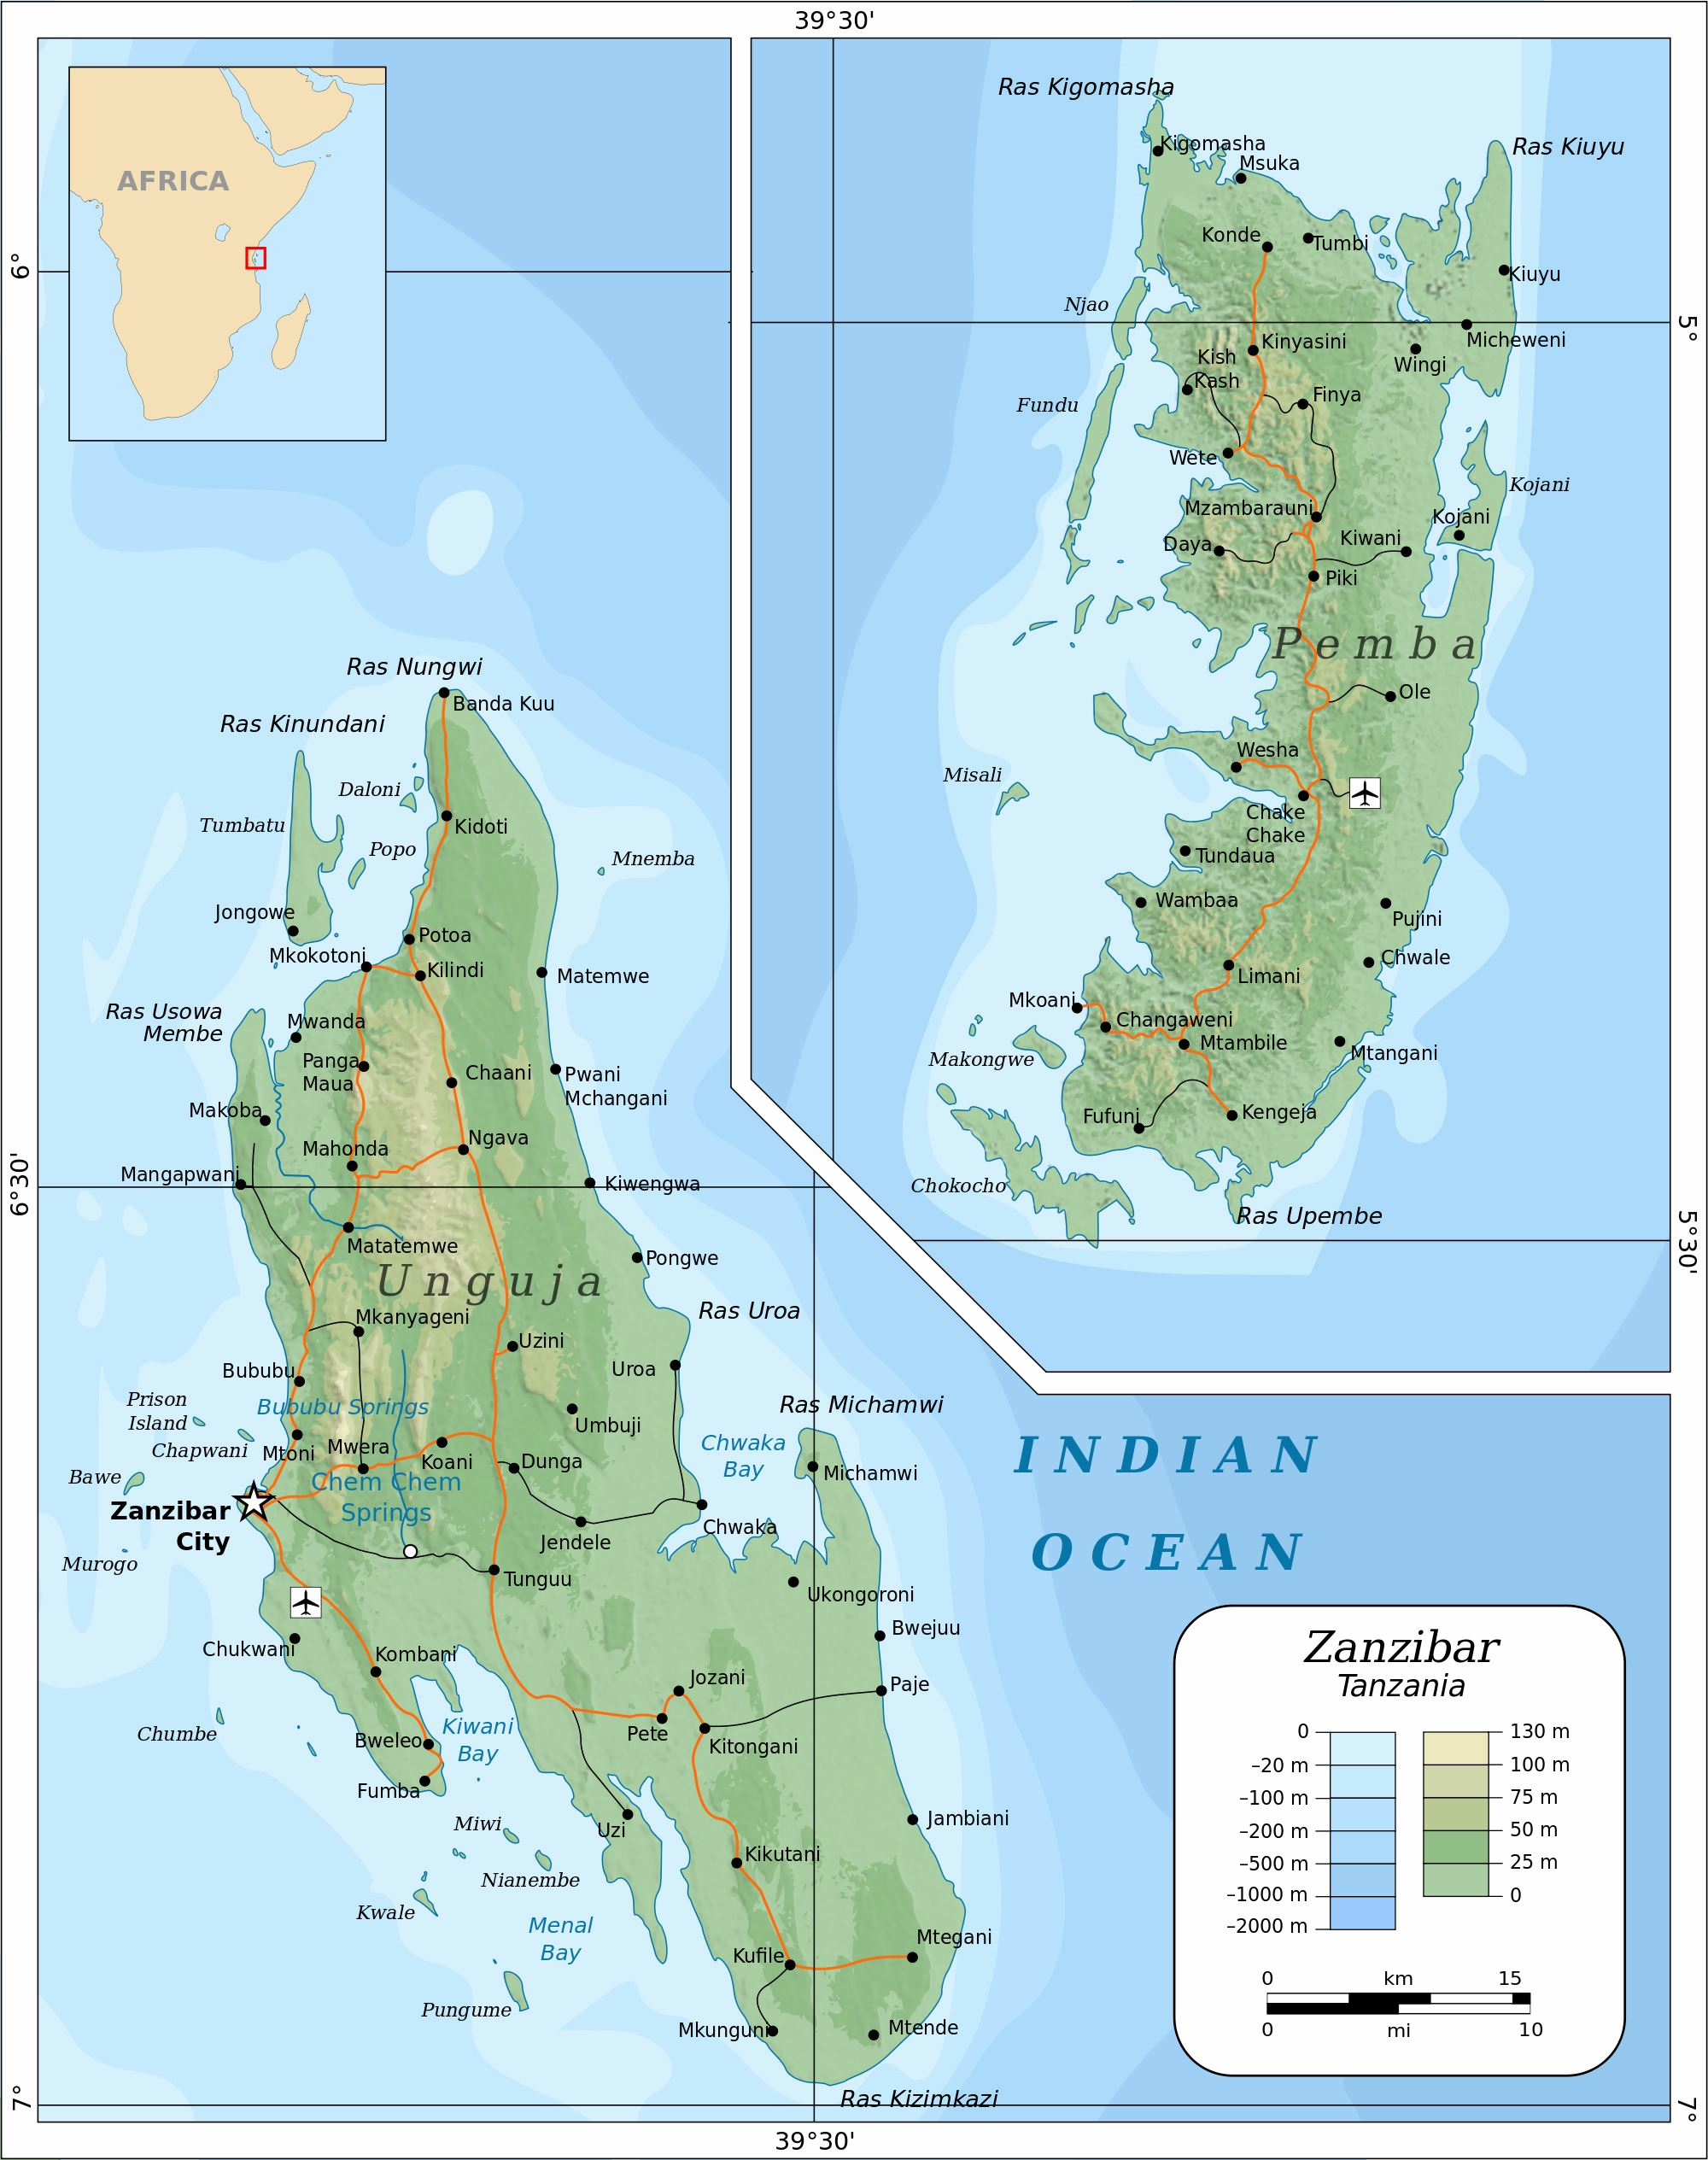 Large Zanzibar Island Maps For Free Download And Print High